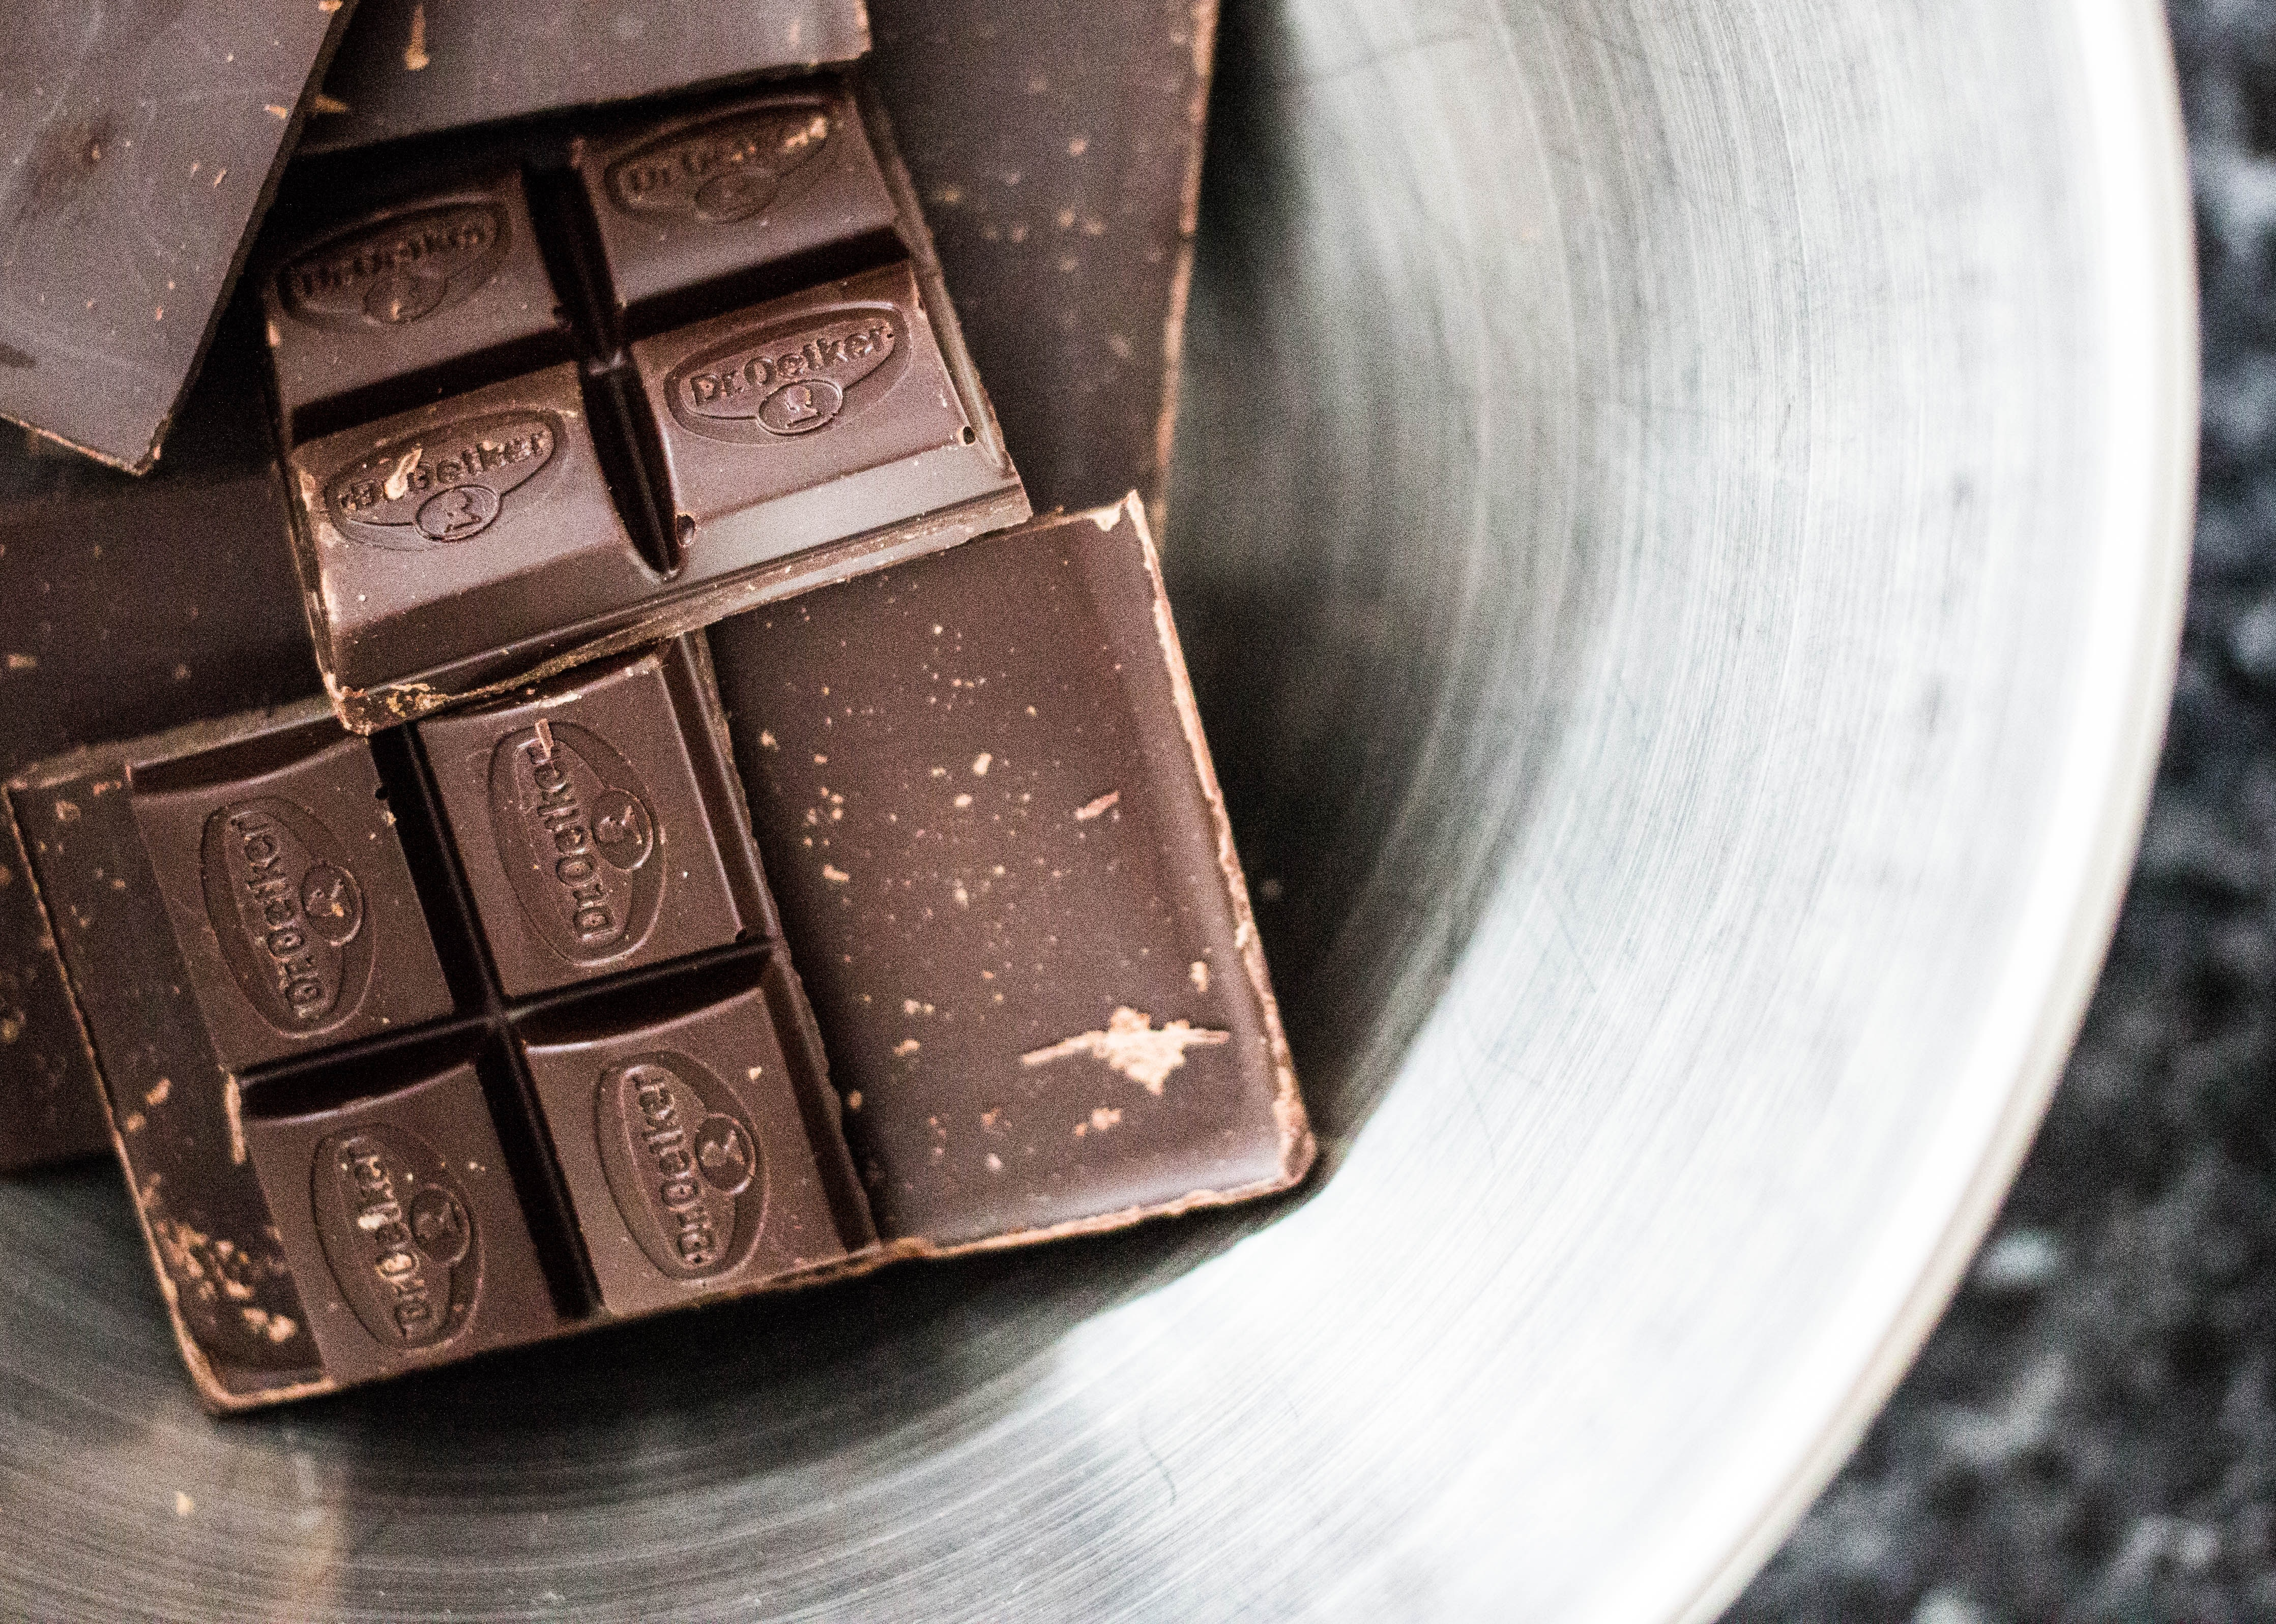 Dark chocolate is full of antioxidents which will help you feeling (and looking) good. Photo: Charisse Kenion on Unsplash